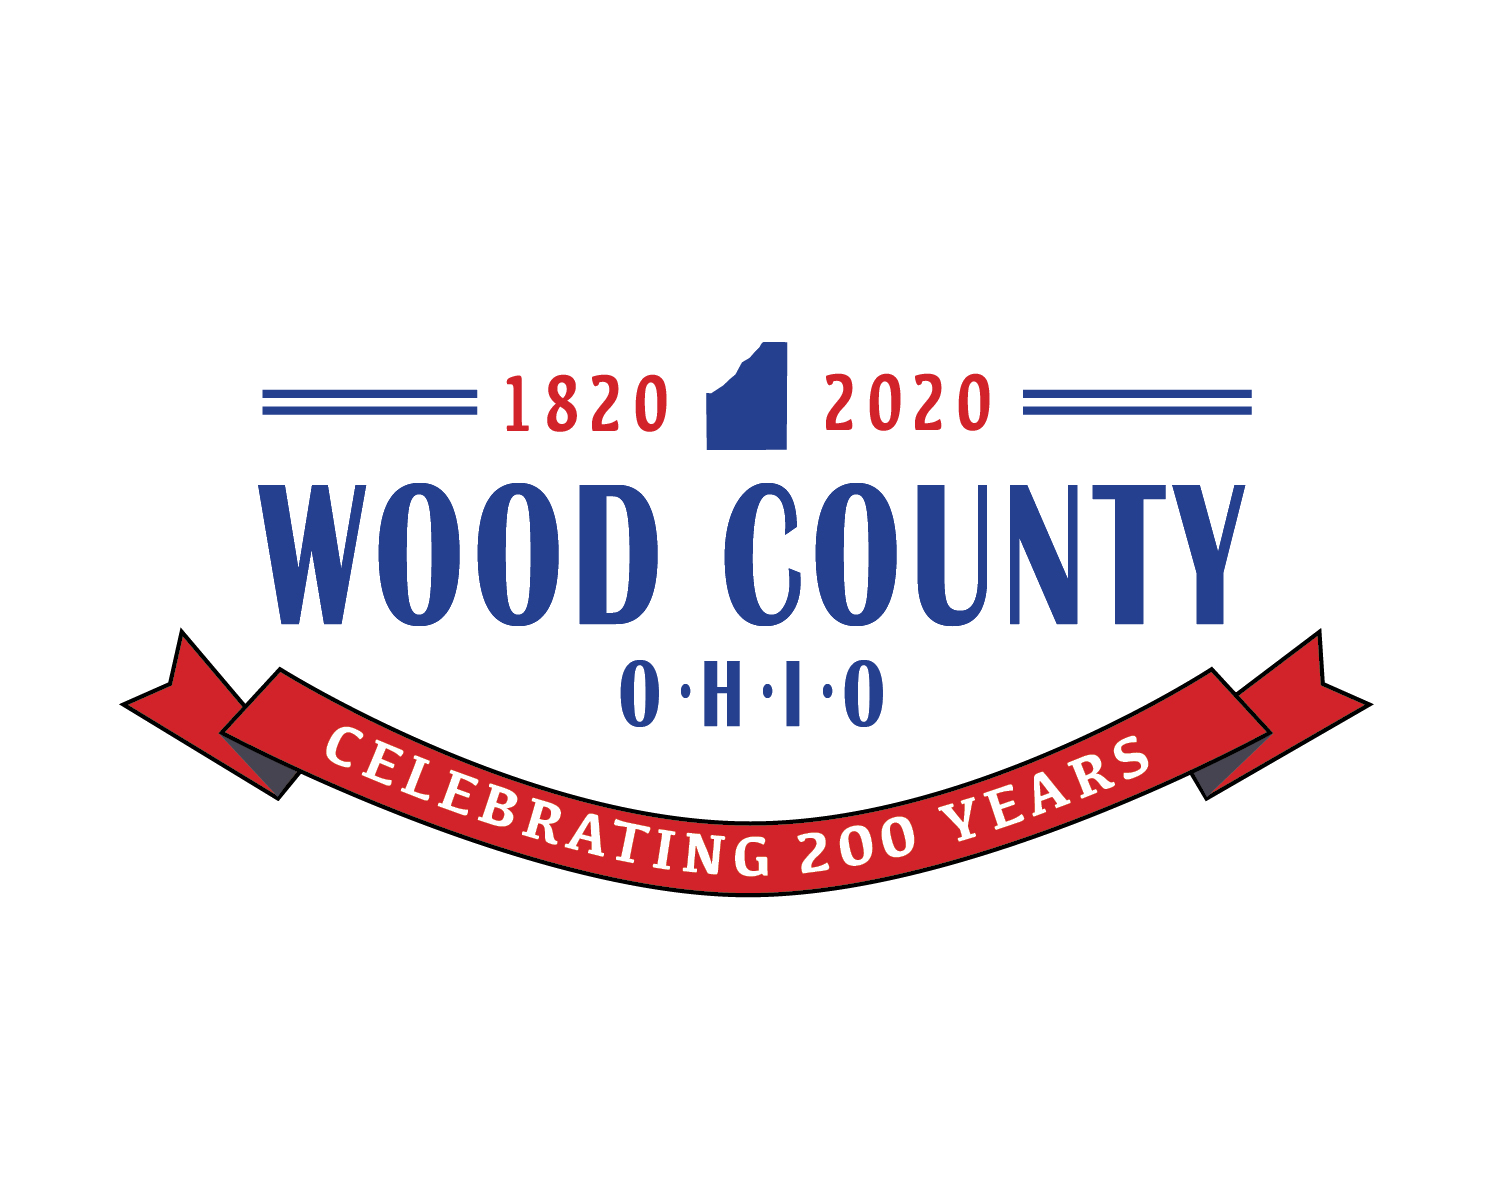 Wood County, Ohio Bicentennial, 1820-2020